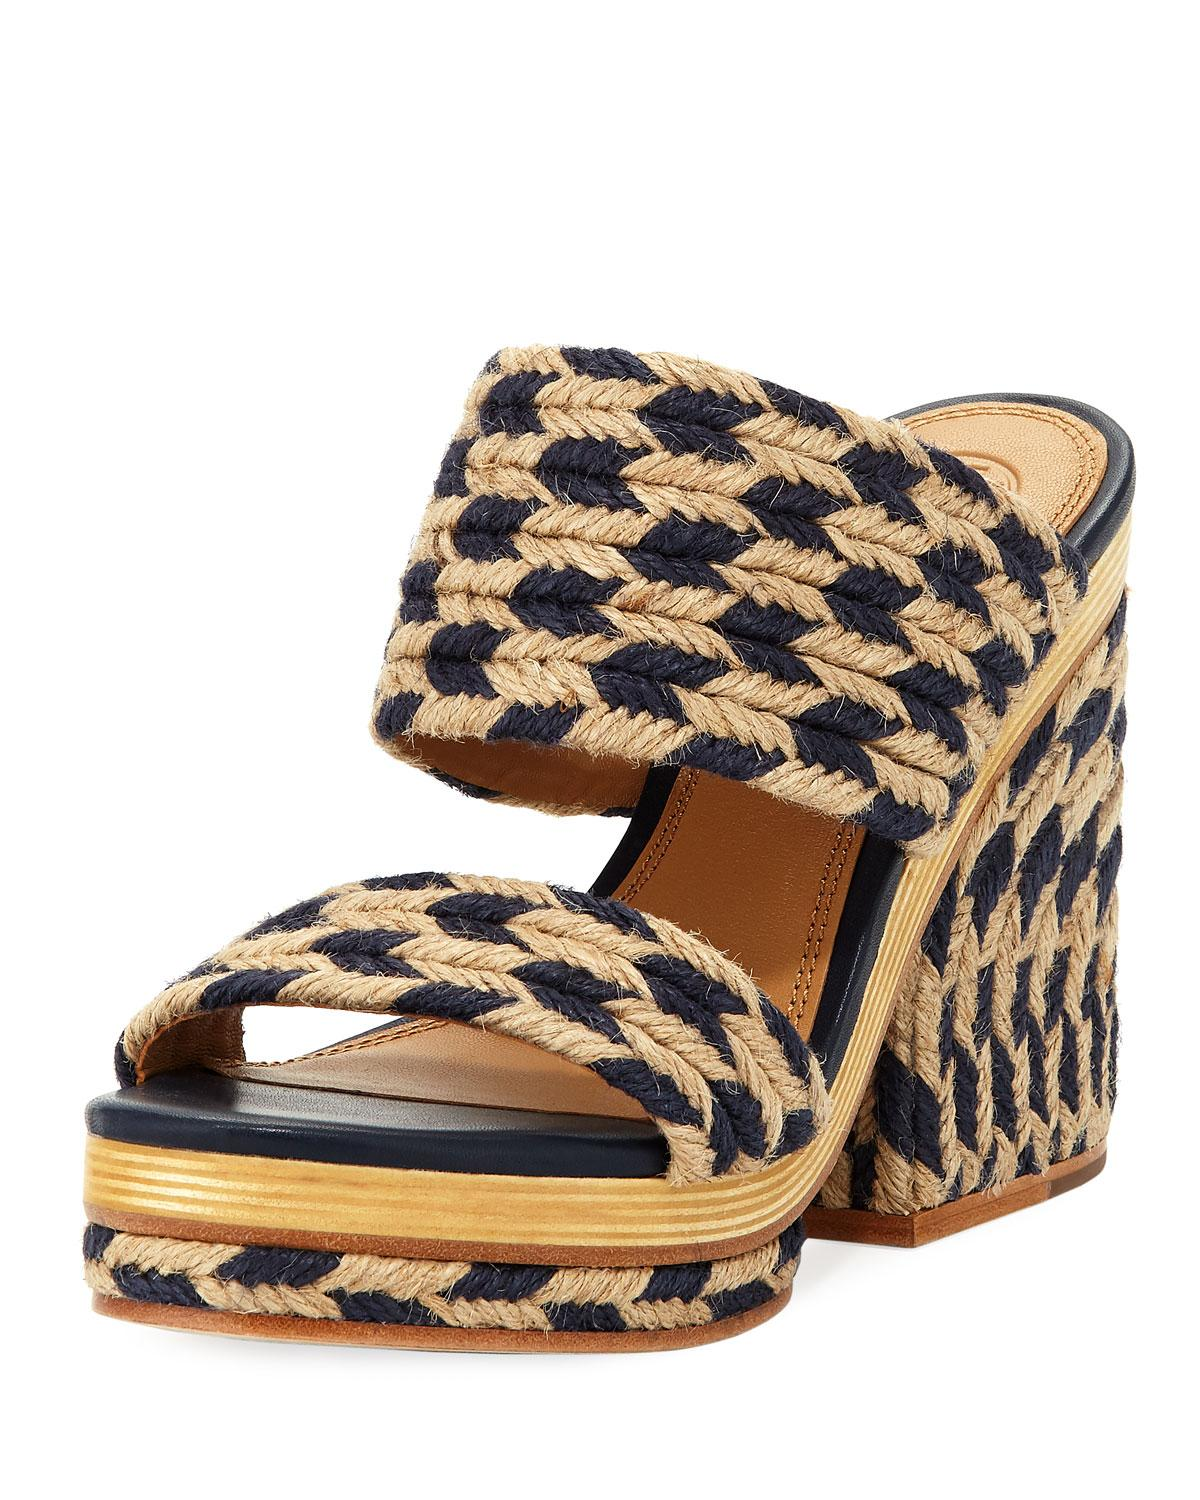 d80839620e67 Tory Burch Women s Lola Woven Jute   Leather High-Heel Slide Sandals In  Perfect Navy